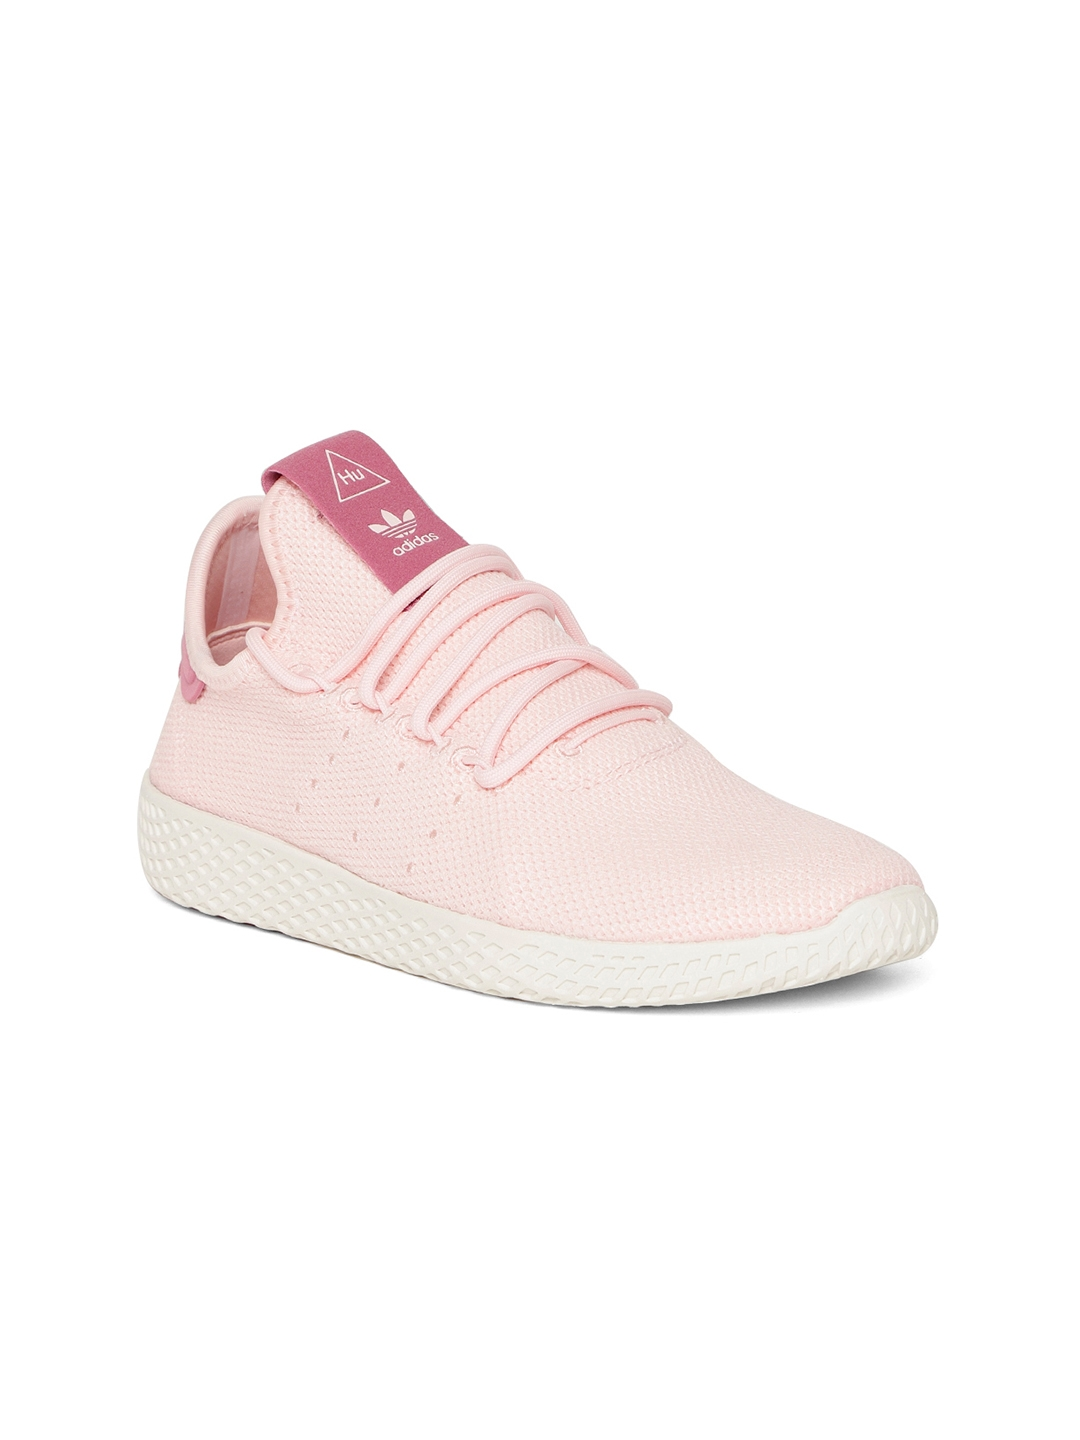 detailed look e0b7c 7bc15 ADIDAS Originals Women Pink Pharrell Williams Tennis HU Sneakers